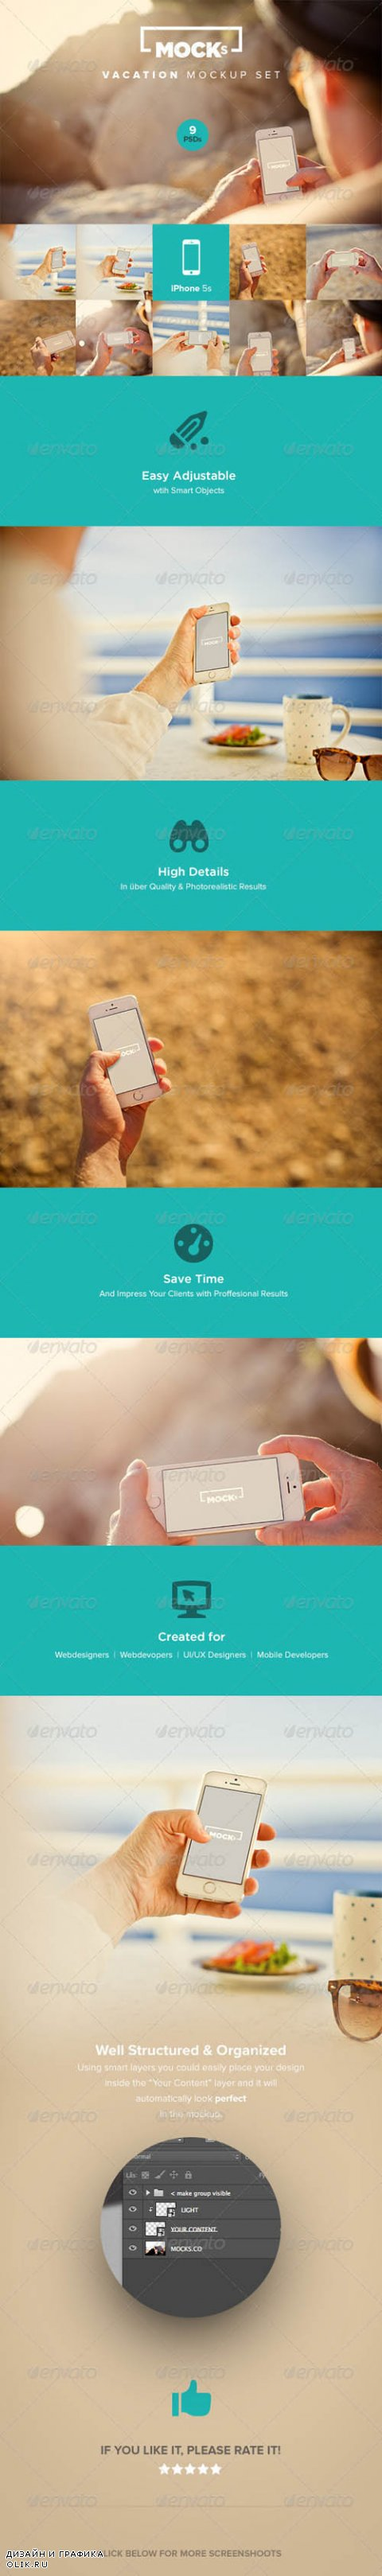 Photorealistic iPhone Mockup Templates 8118721